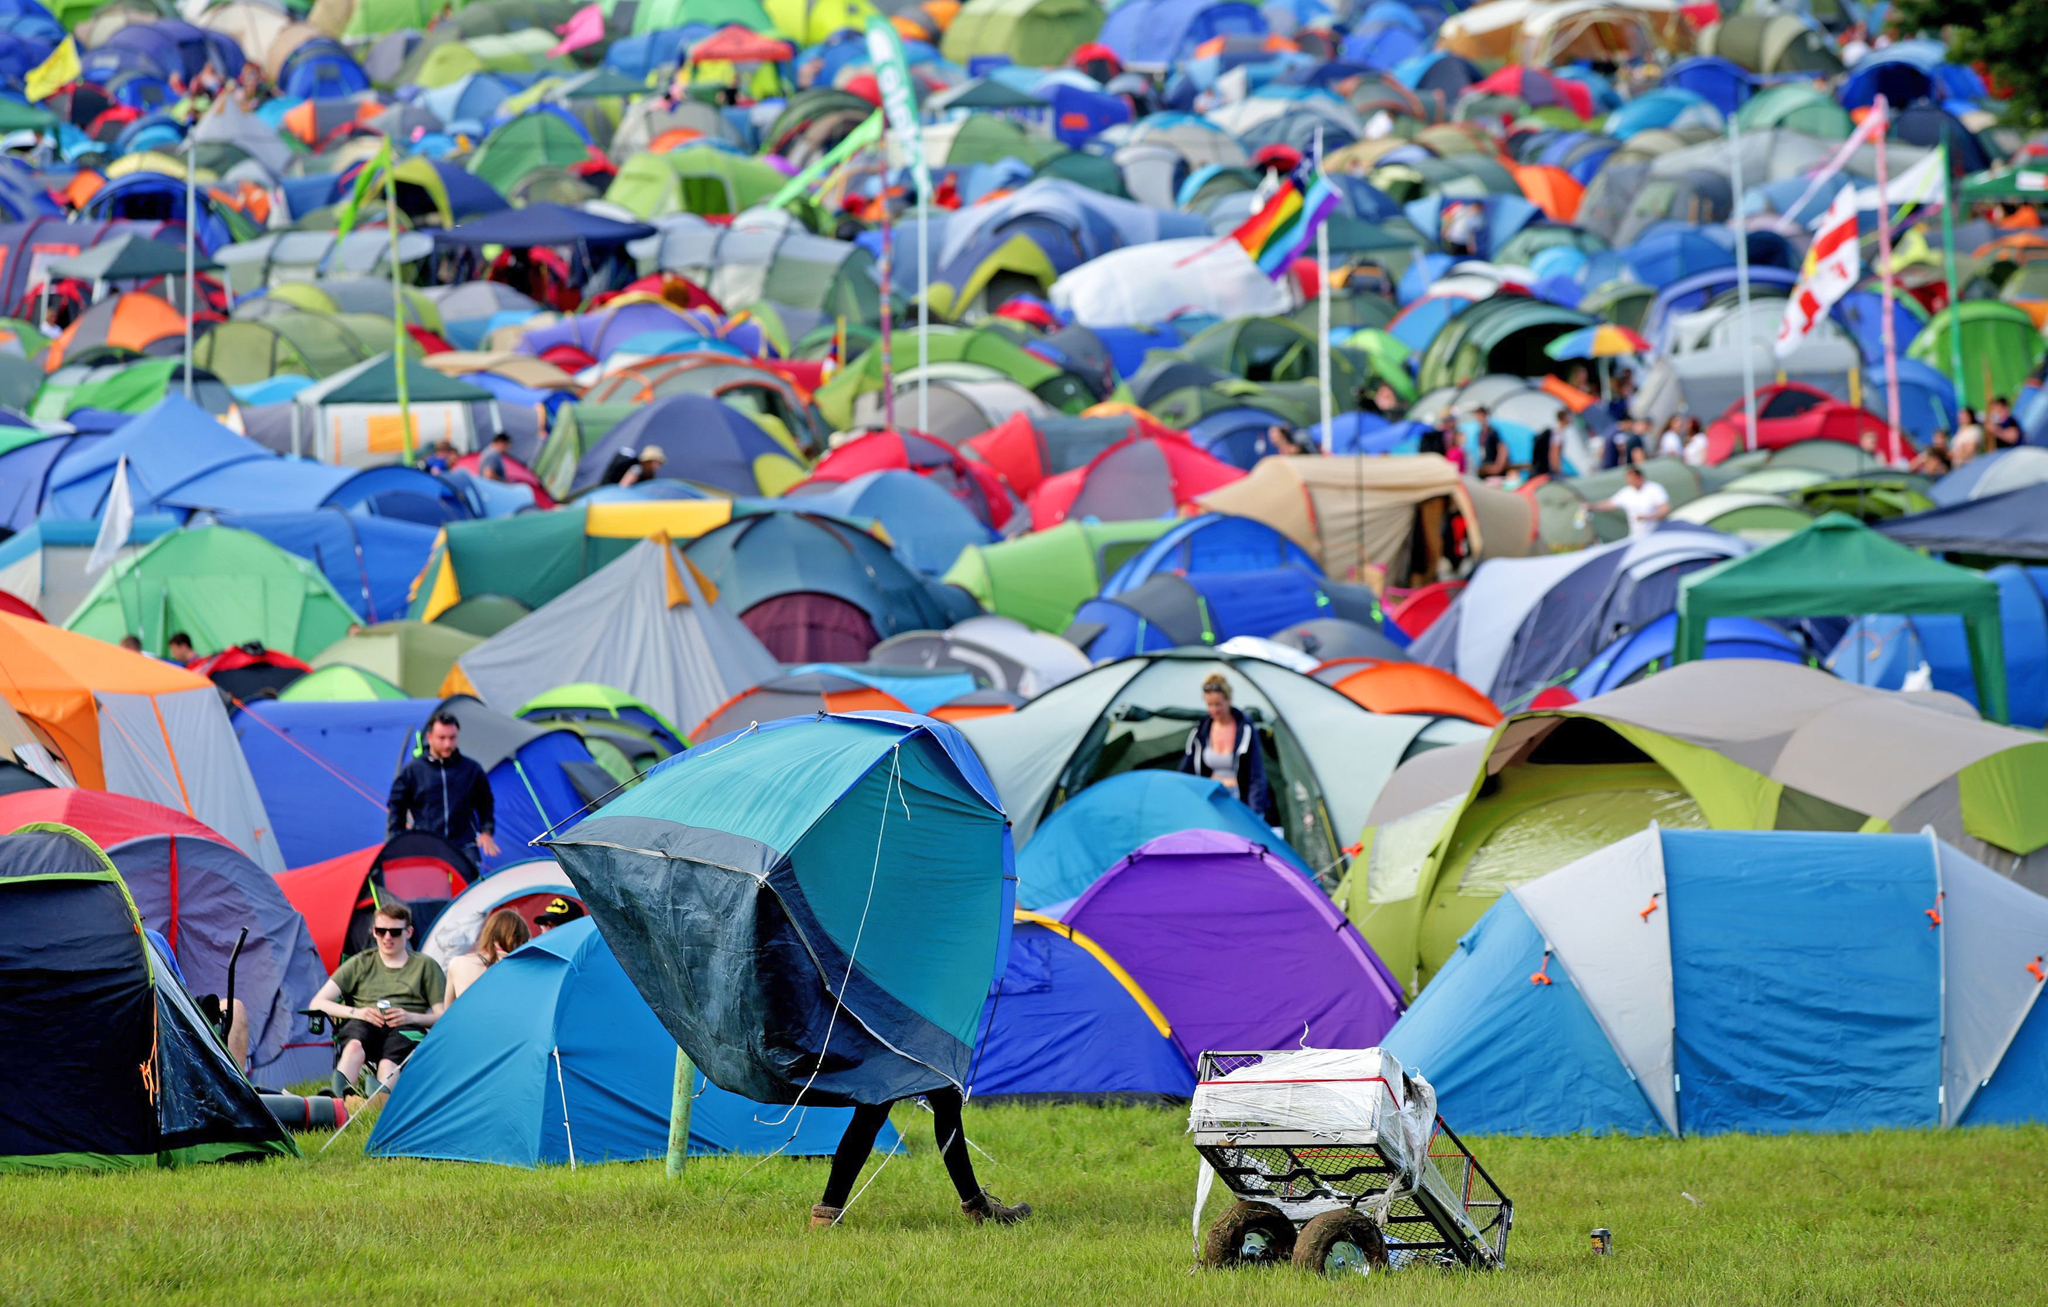 A festivalgoer carrying a tent at the Glastonbury Festival, at Worthy Farm in Somerset. PRESS ASSOCIATION Photo. See PA story SHOWBIZ Glastonbury. Picture date: Wednesday June 22, 2016